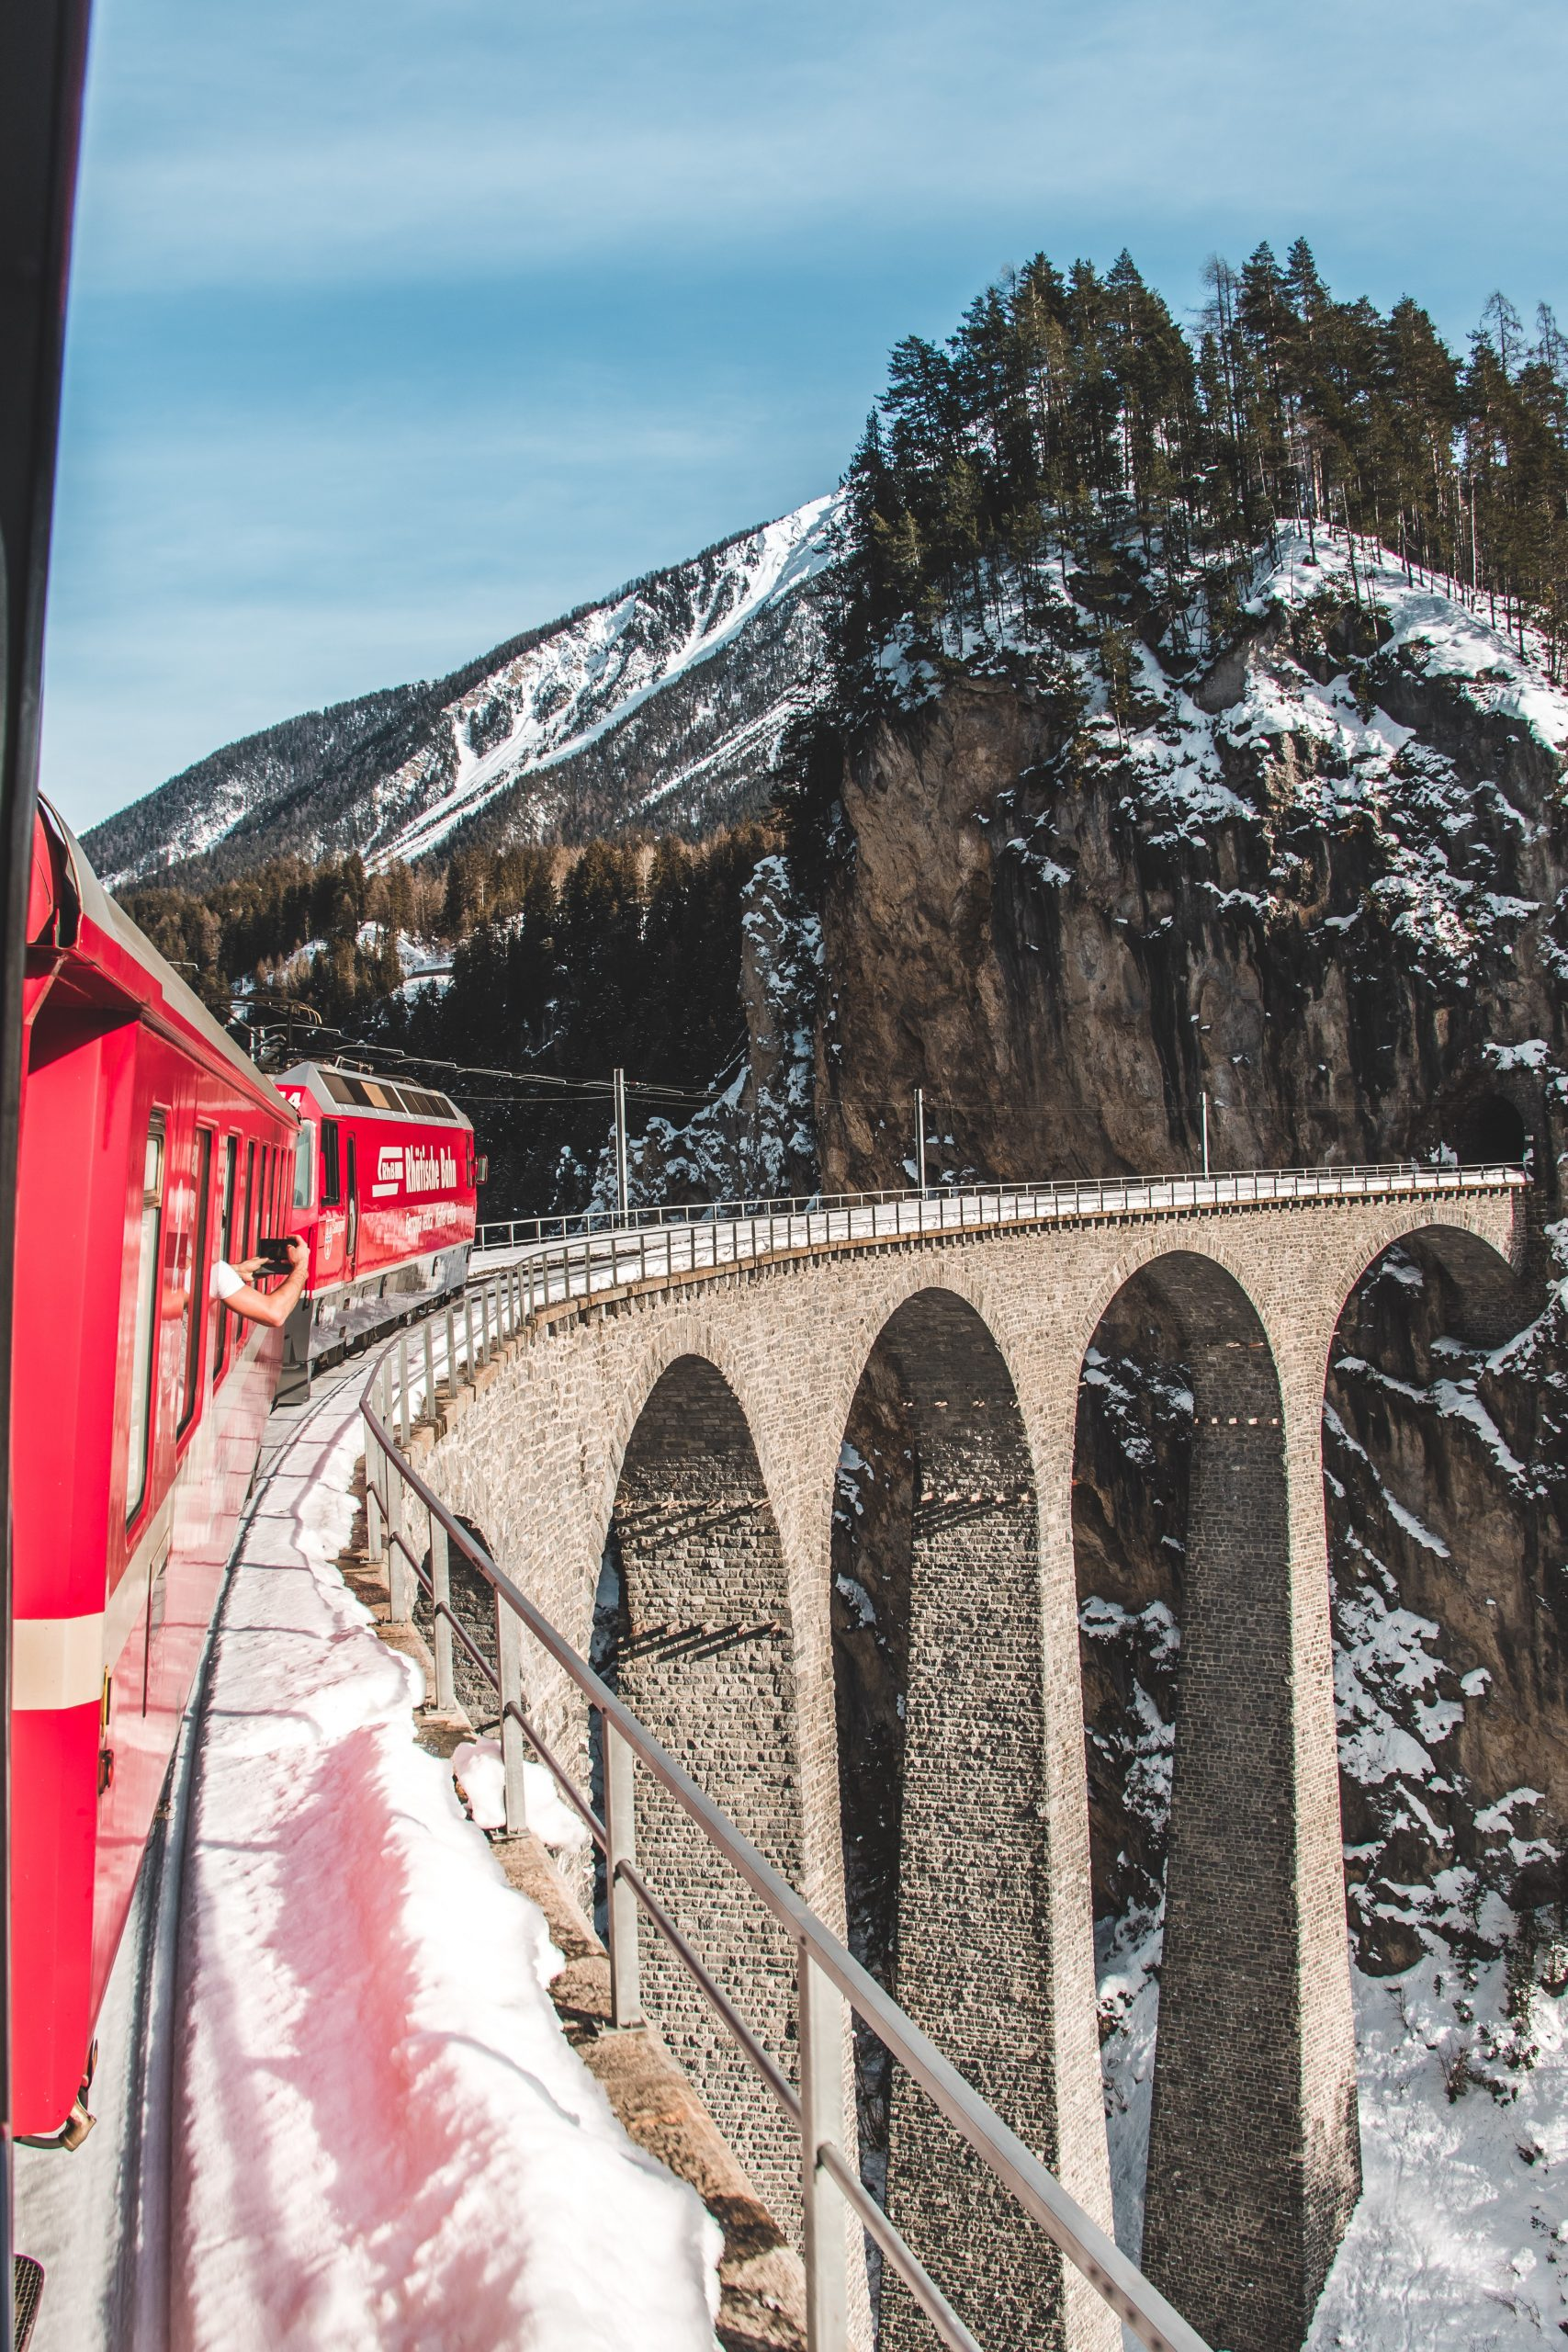 a red train on a bridge in switzerland, scenic train journeys in europe to take next and explore different places in europe